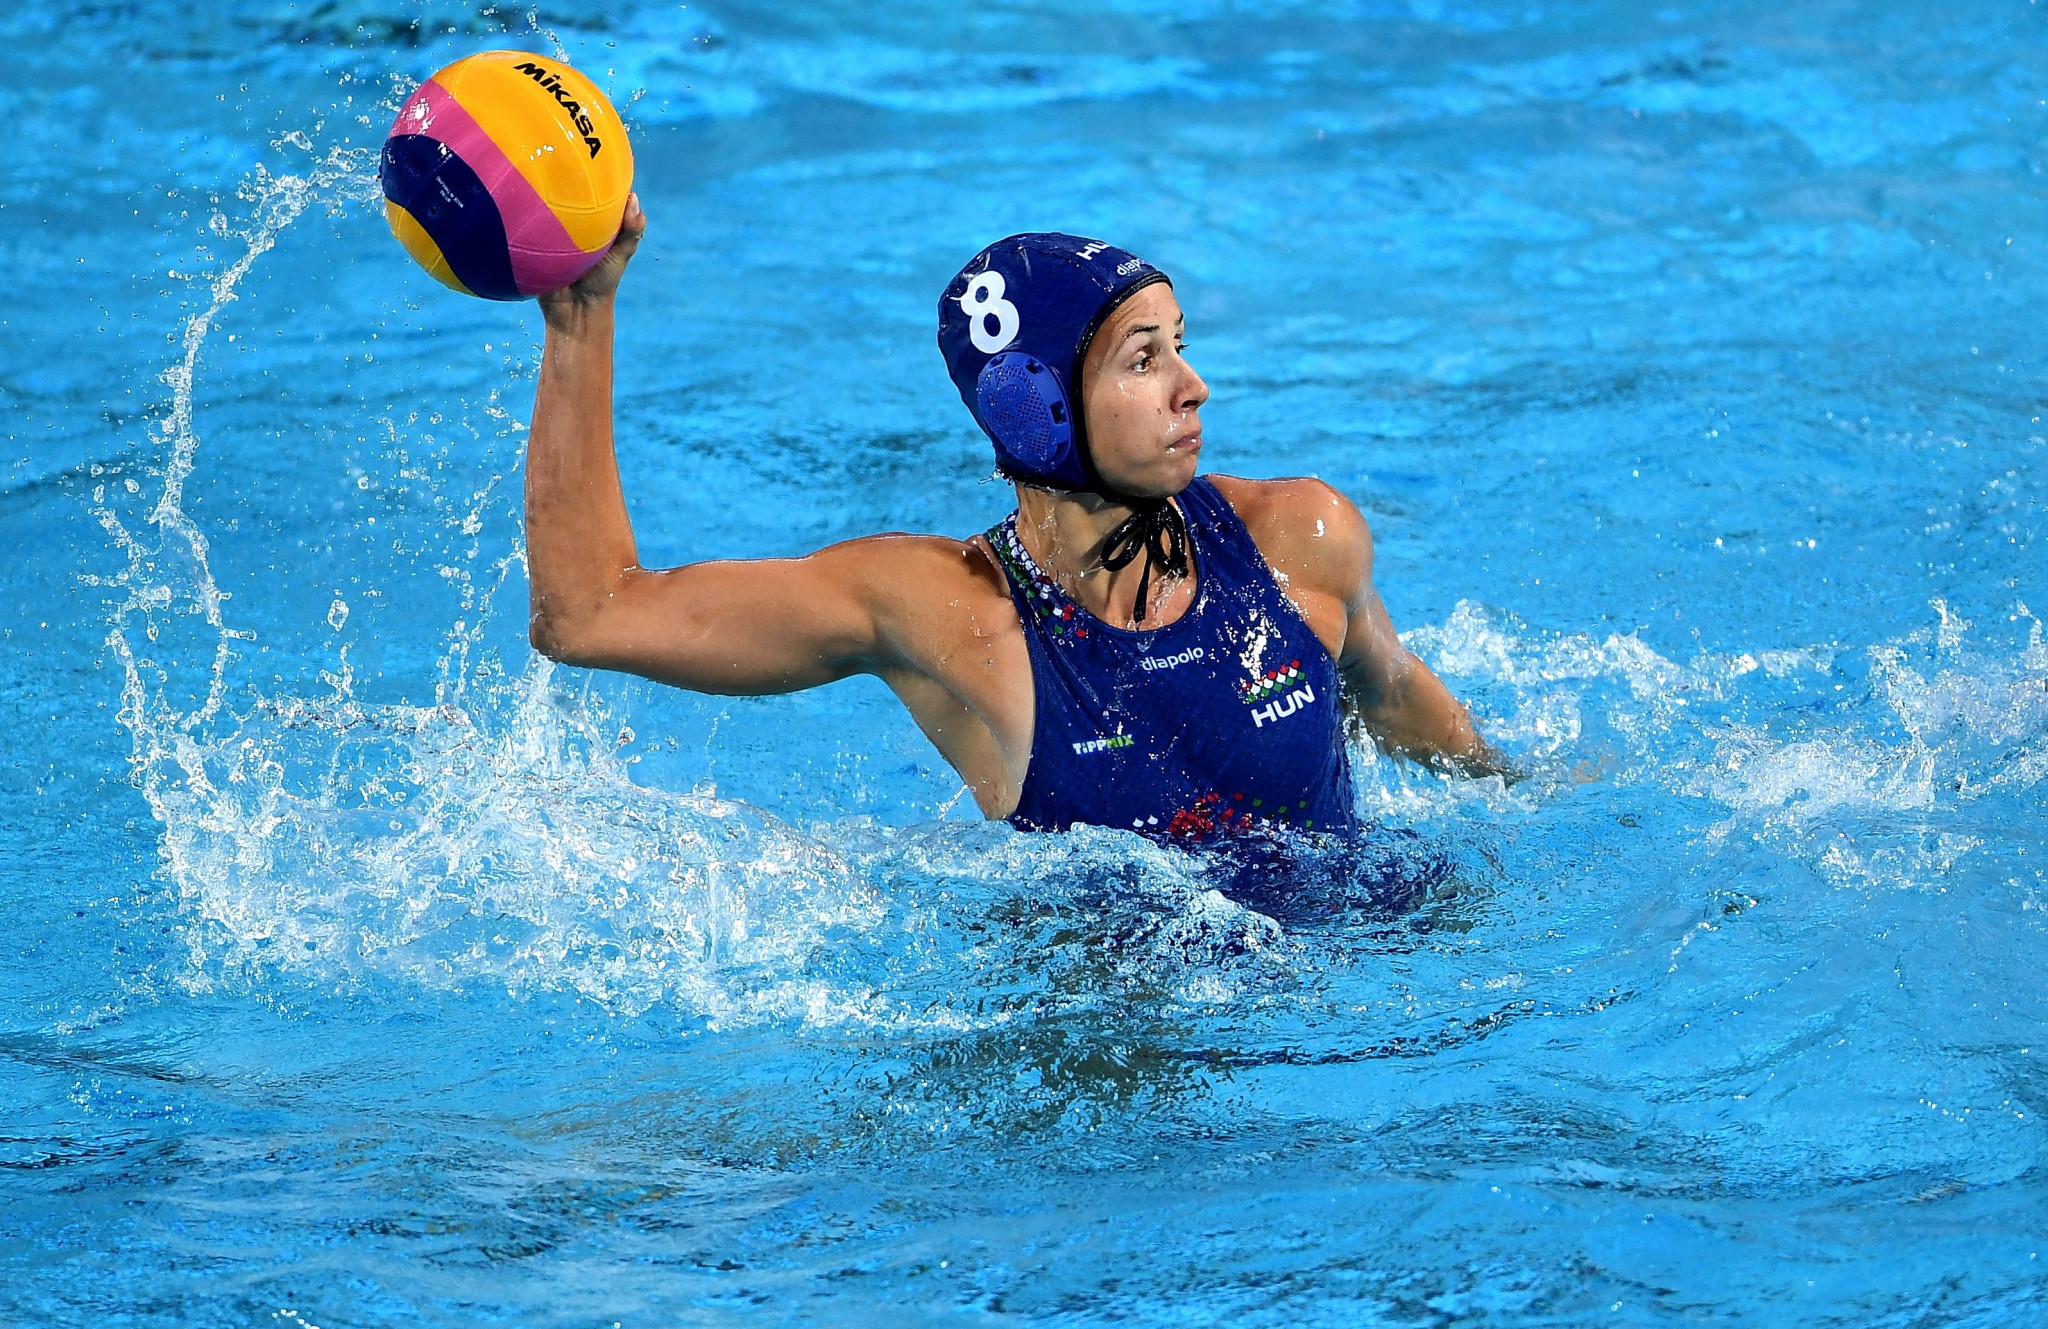 The Netherlands and Hungary qualify for women's Olympic water polo tournament